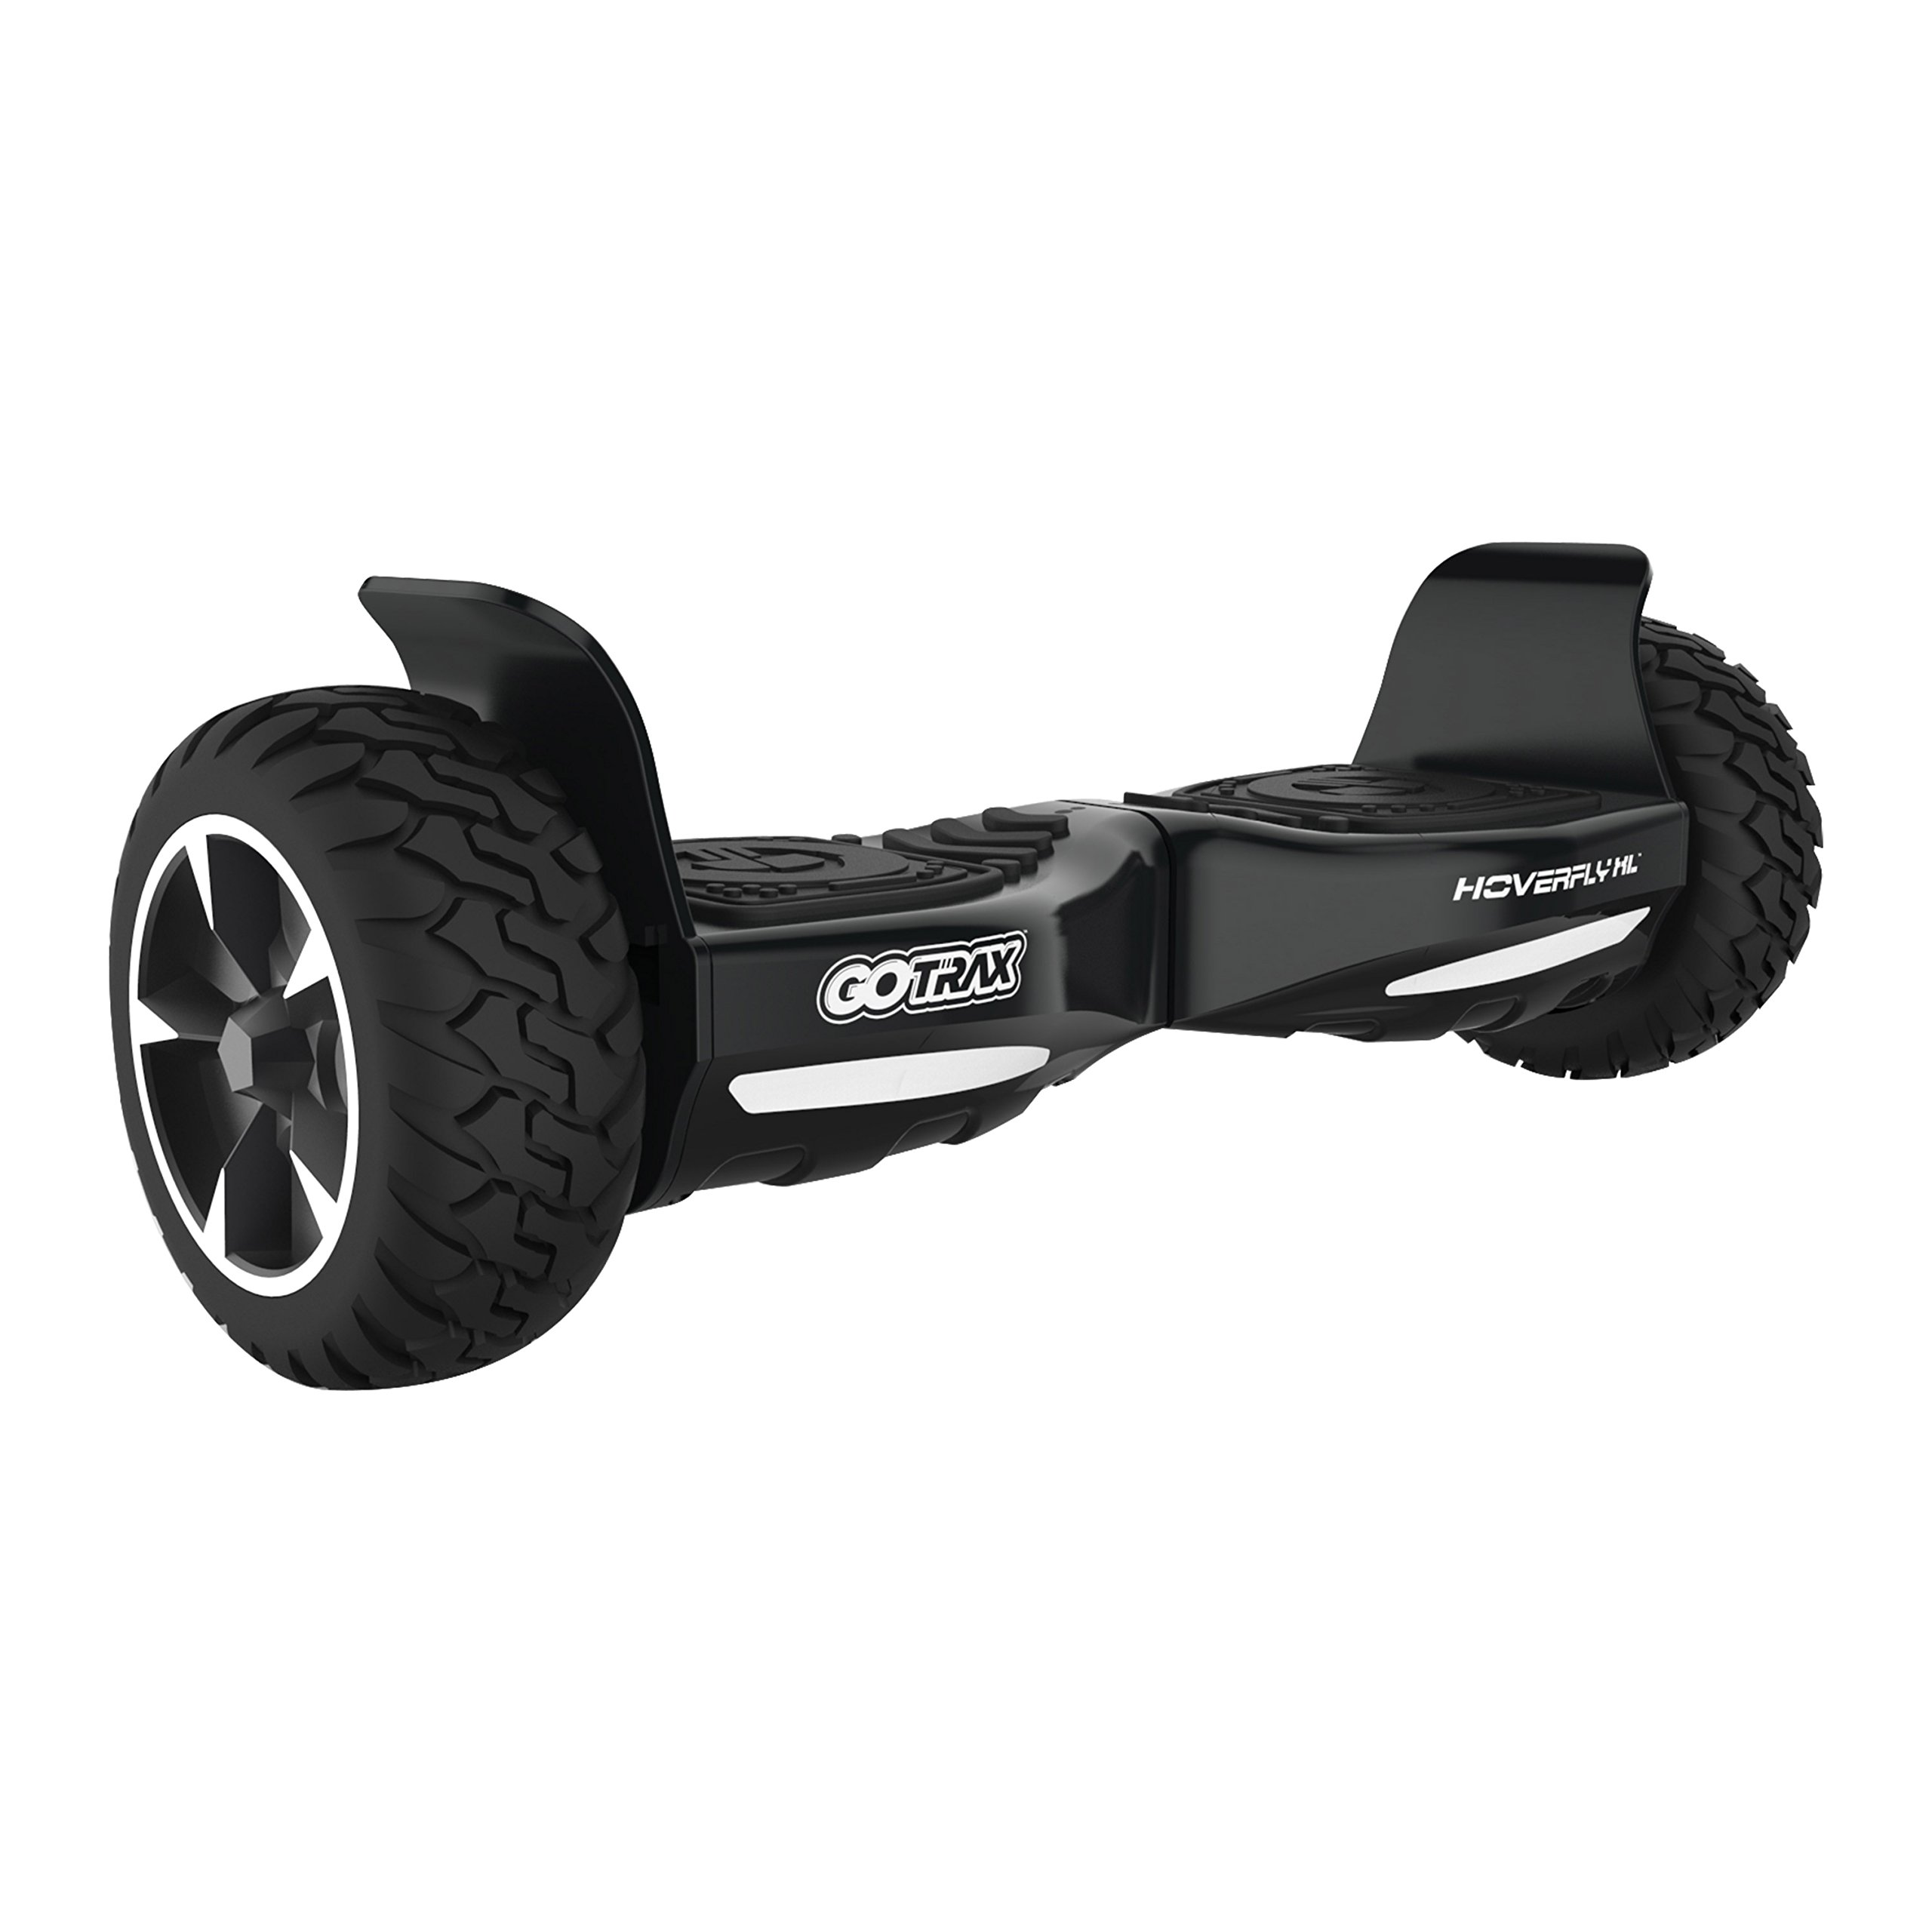 GOTRAX Hoverfly XL All Terrain Hover board 8.5 Inflatable Tire - UL2272 Certified Self Balancing Hoverboard by GOTRAX